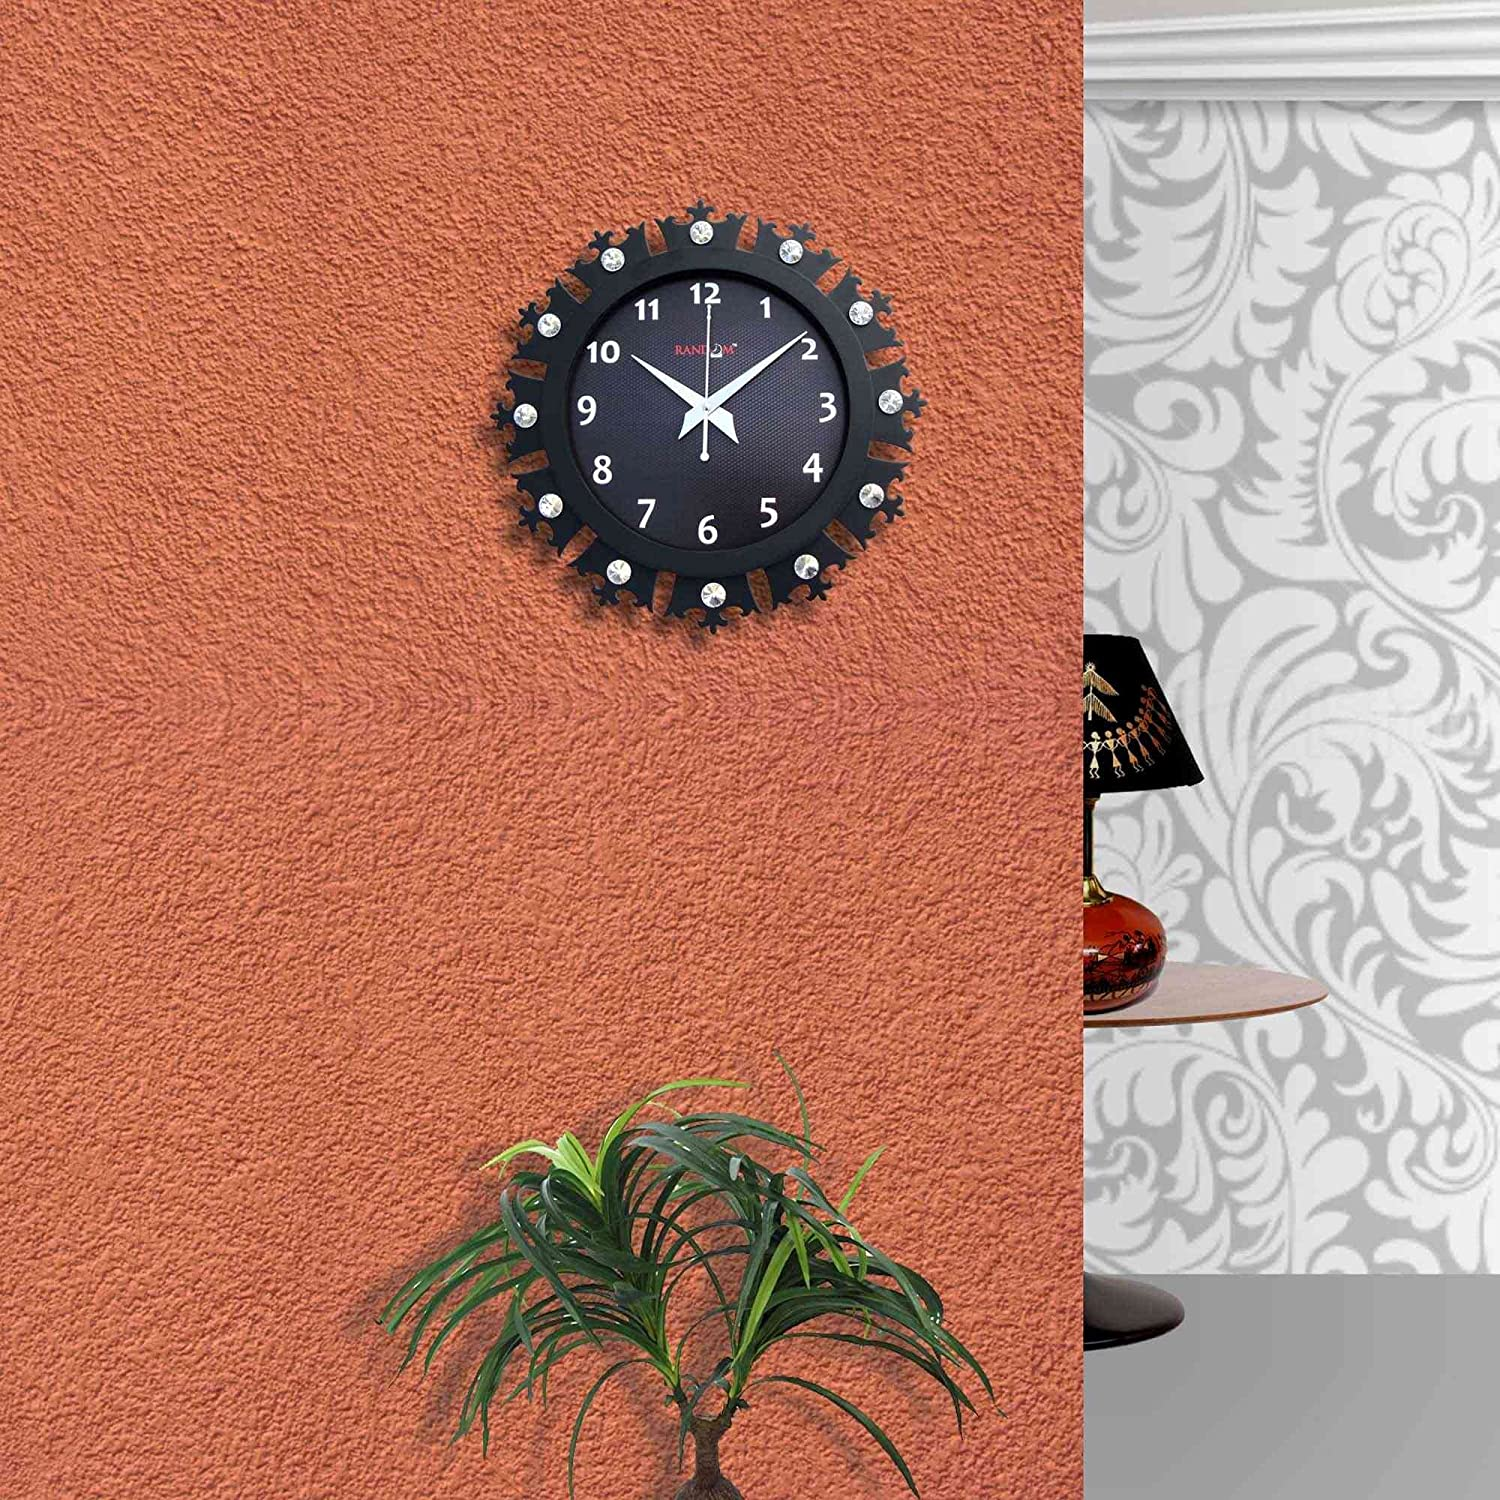 Buy Random Clocks Crowny Round Wood Wall Clock 30 Cm X 30 Cm X 5 Cm Black Rc 0714 Online At Low Prices In India Amazon In